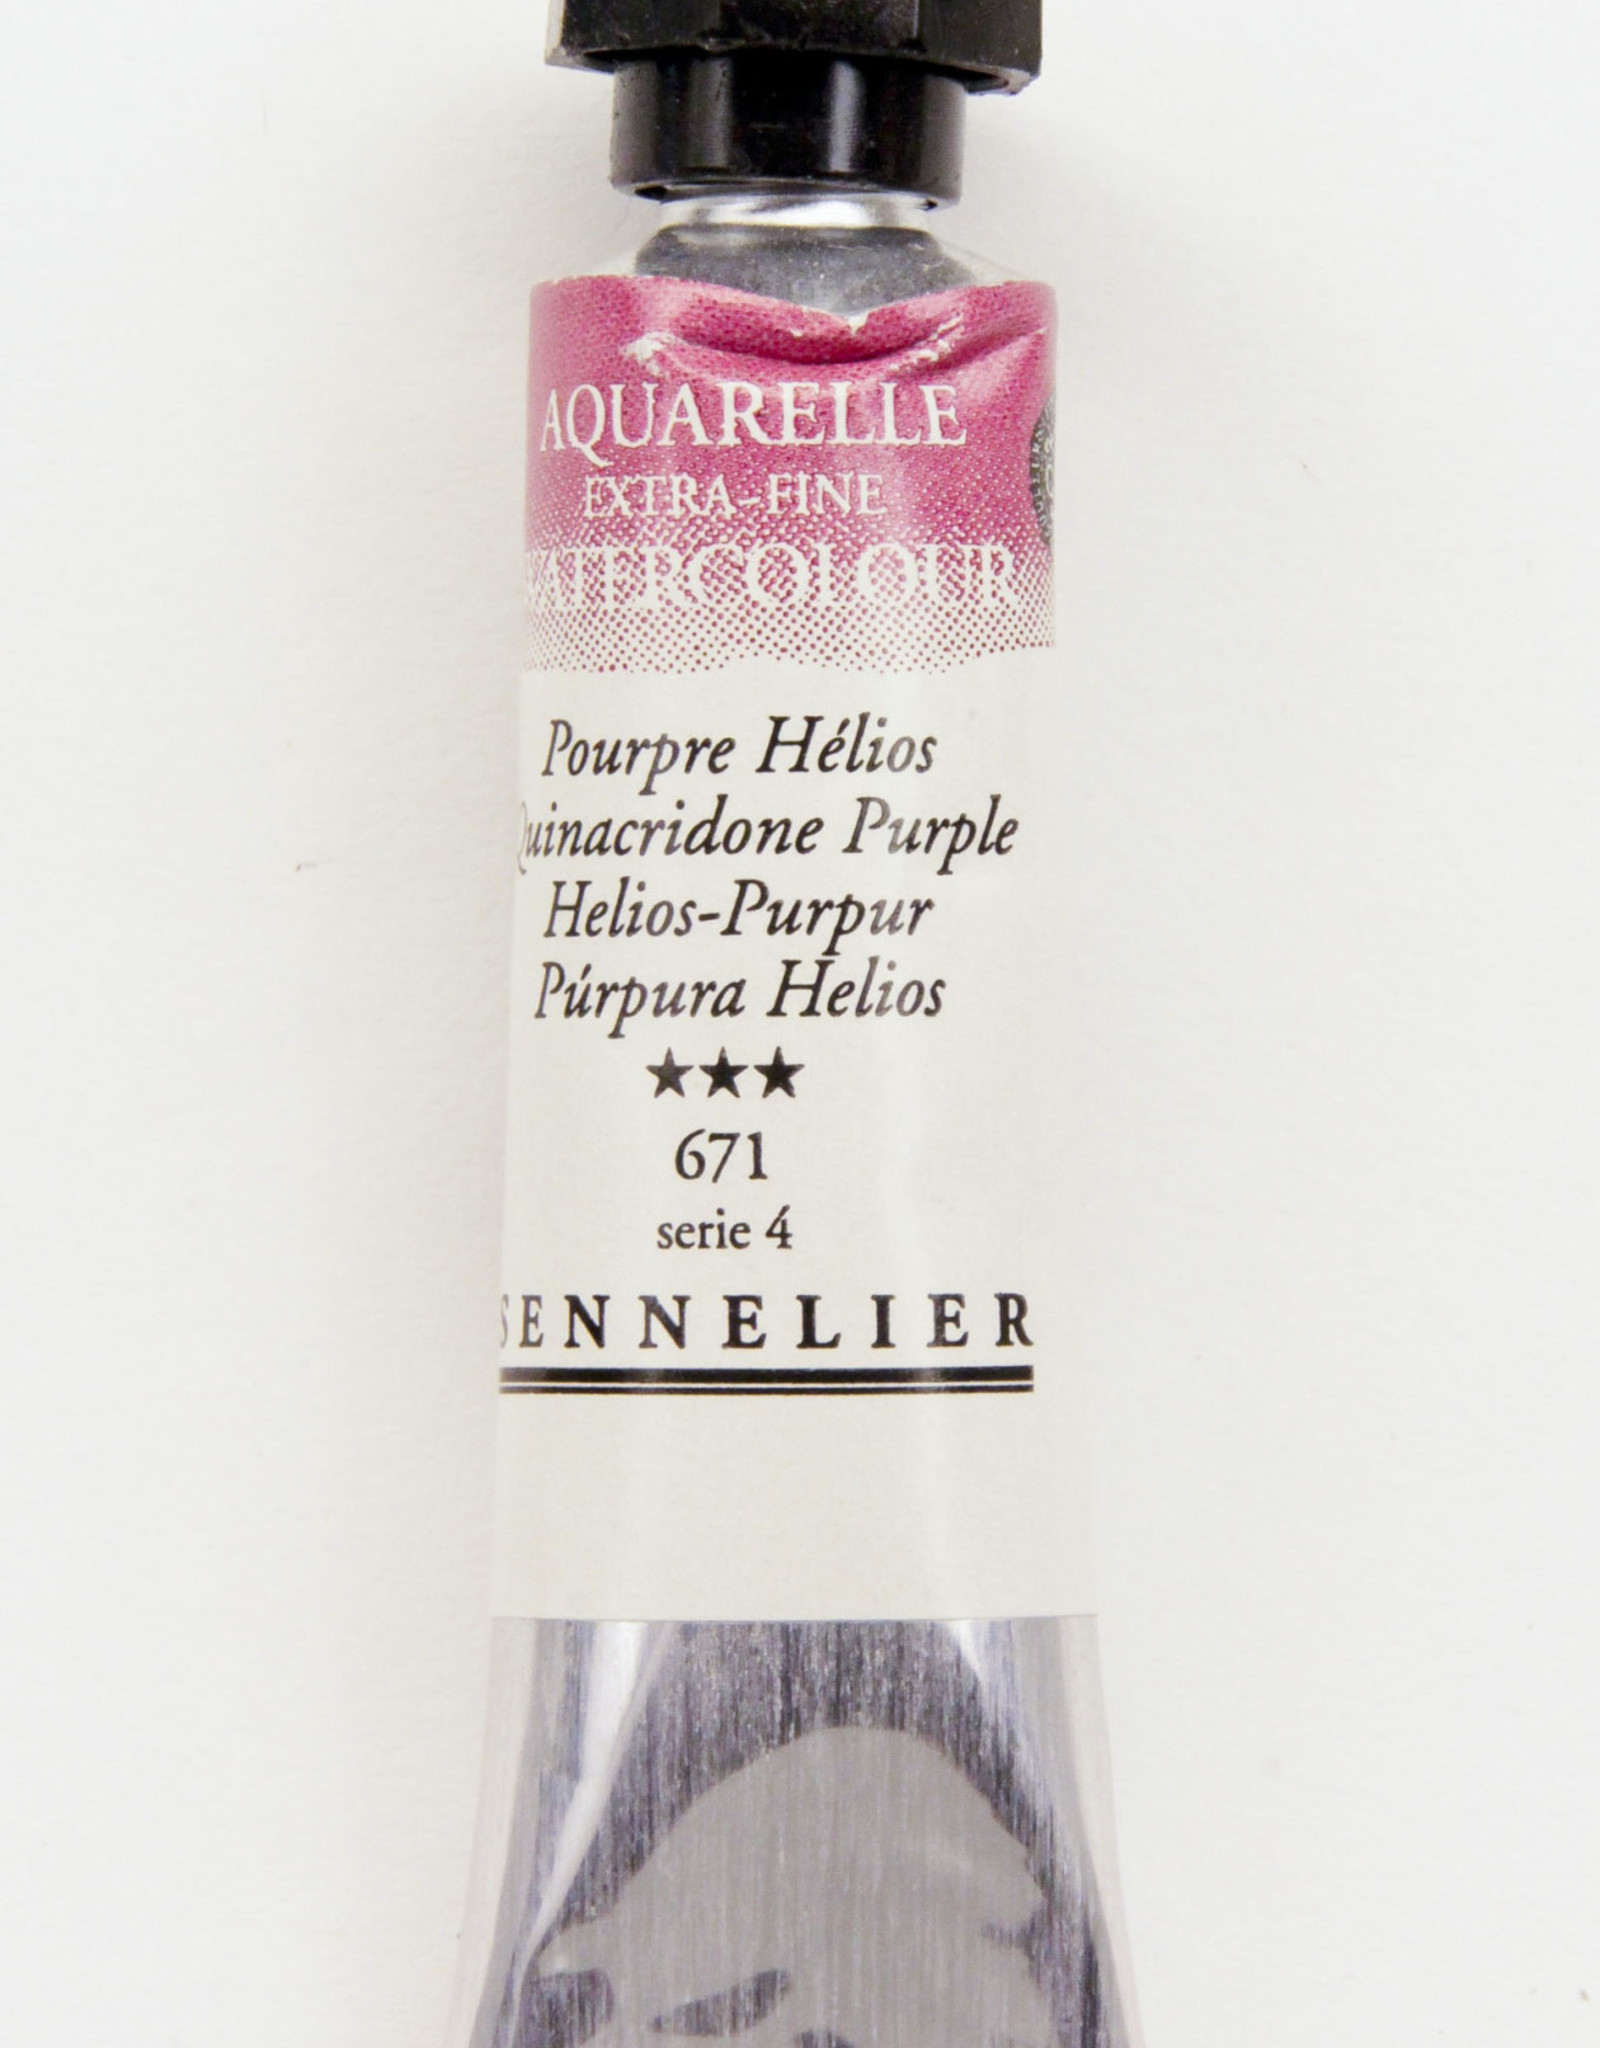 Sennelier, Aquarelle Watercolor Paint, Quinacridone Purple, 671,10ml Tube, Series 3